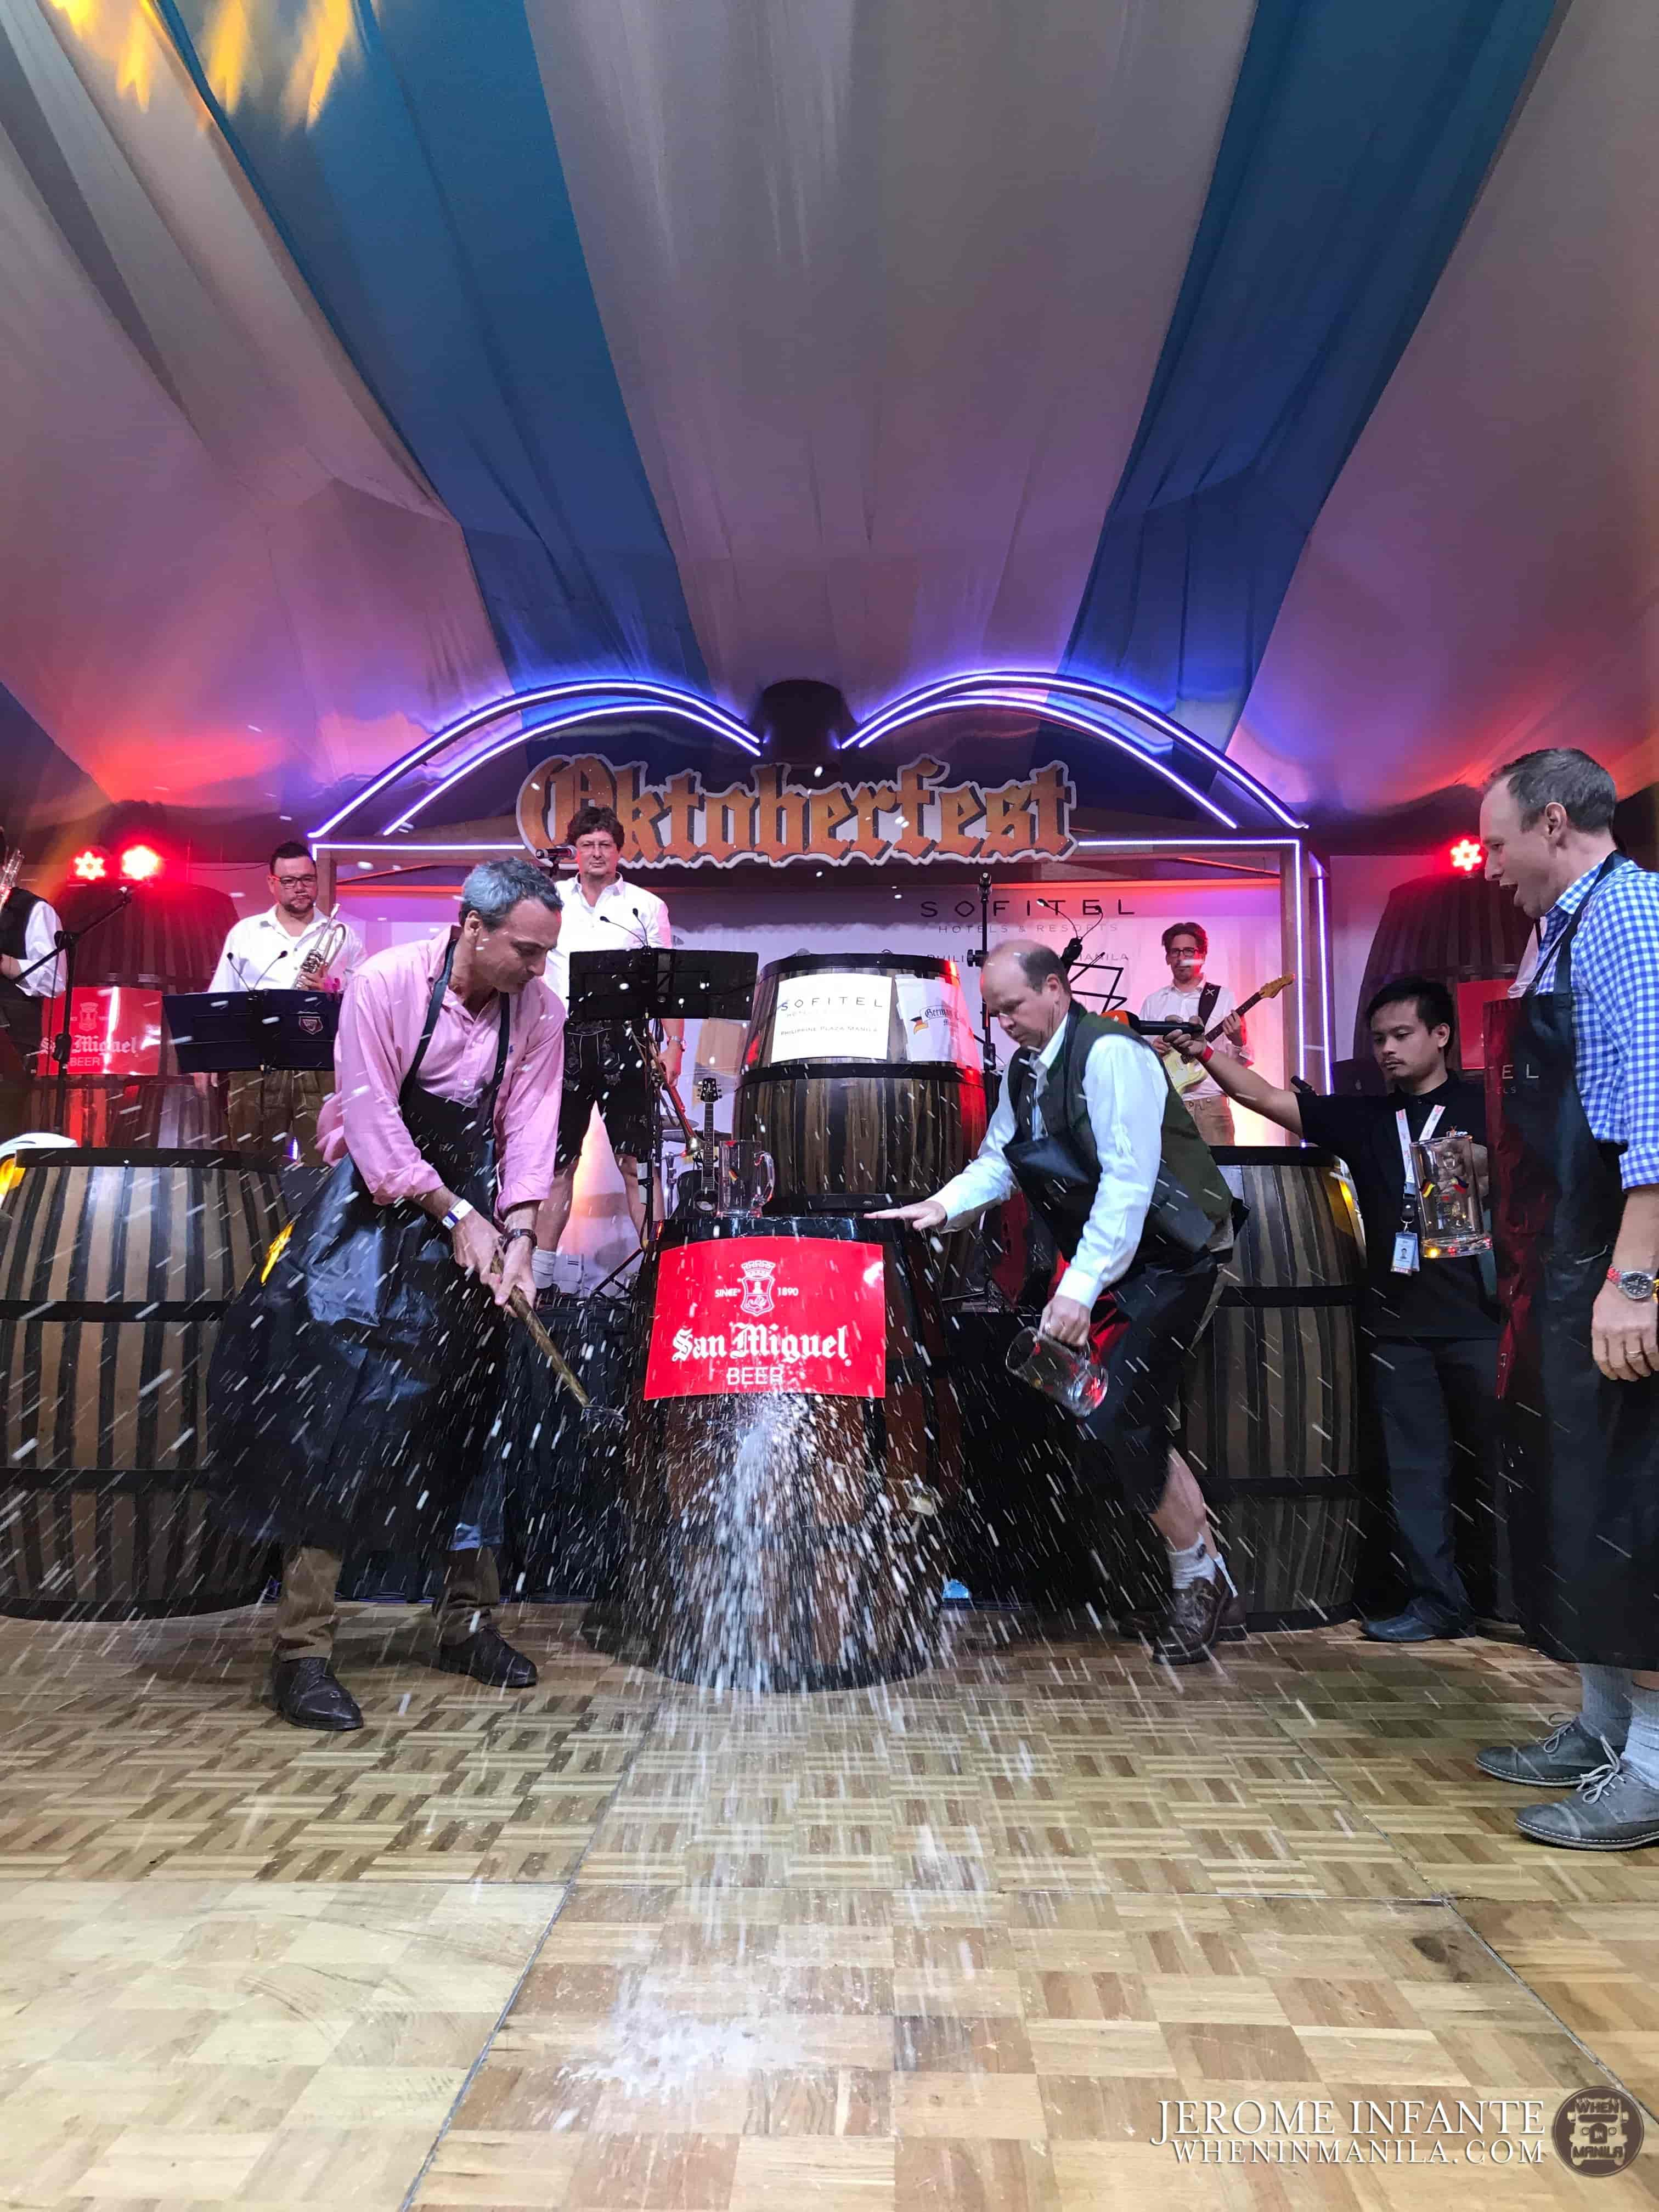 """""""O'zapft is"""" is a Bavarian expression which means """"it's tapped,"""" officially indicating the beginning of the festival."""